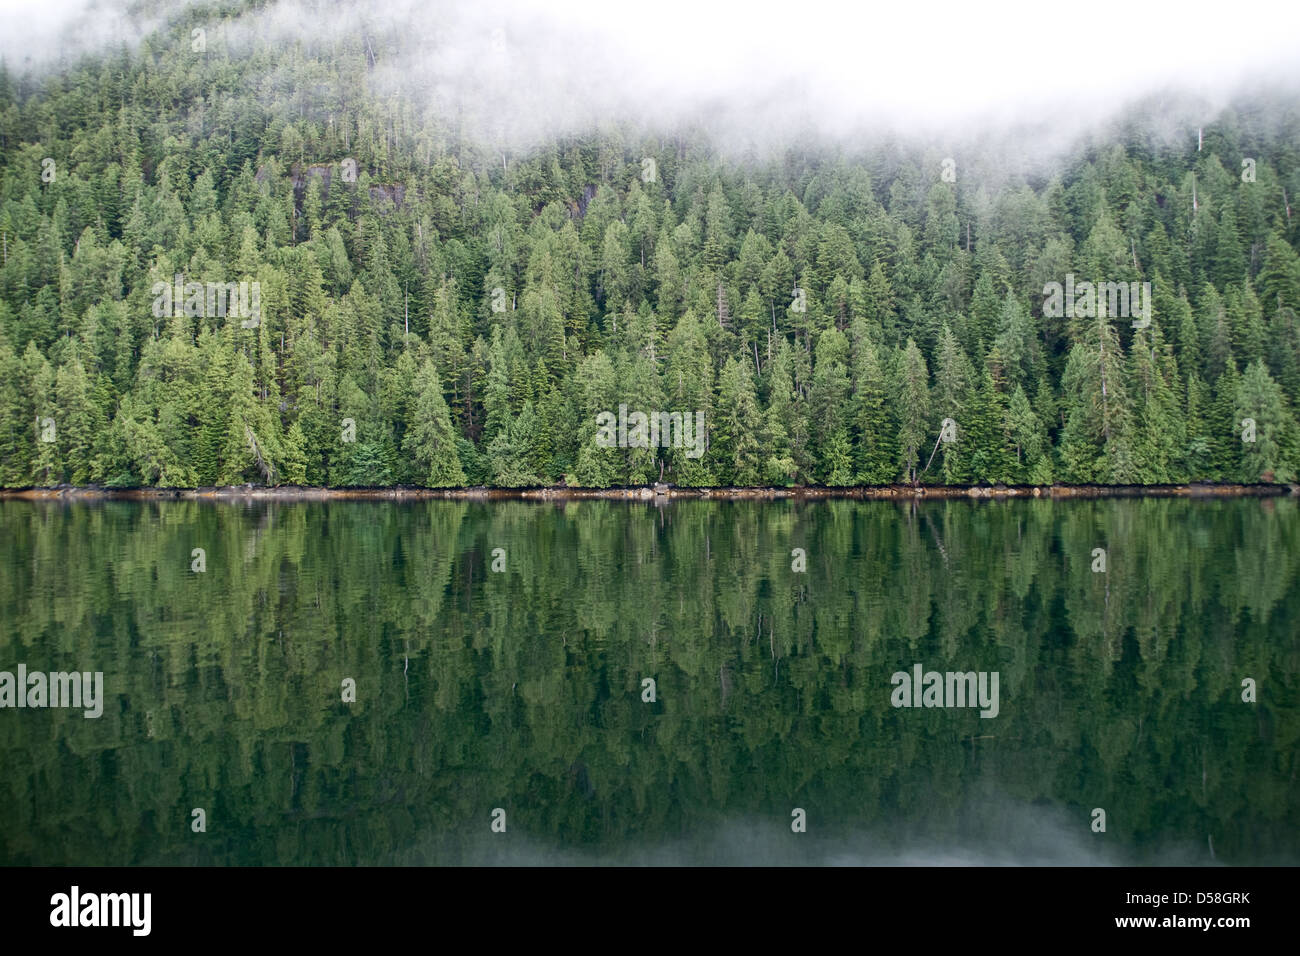 A densely forested mountainside beneath mist in in Roscoe Inlet in the Great Bear Rainforest, British Columbia, - Stock Image